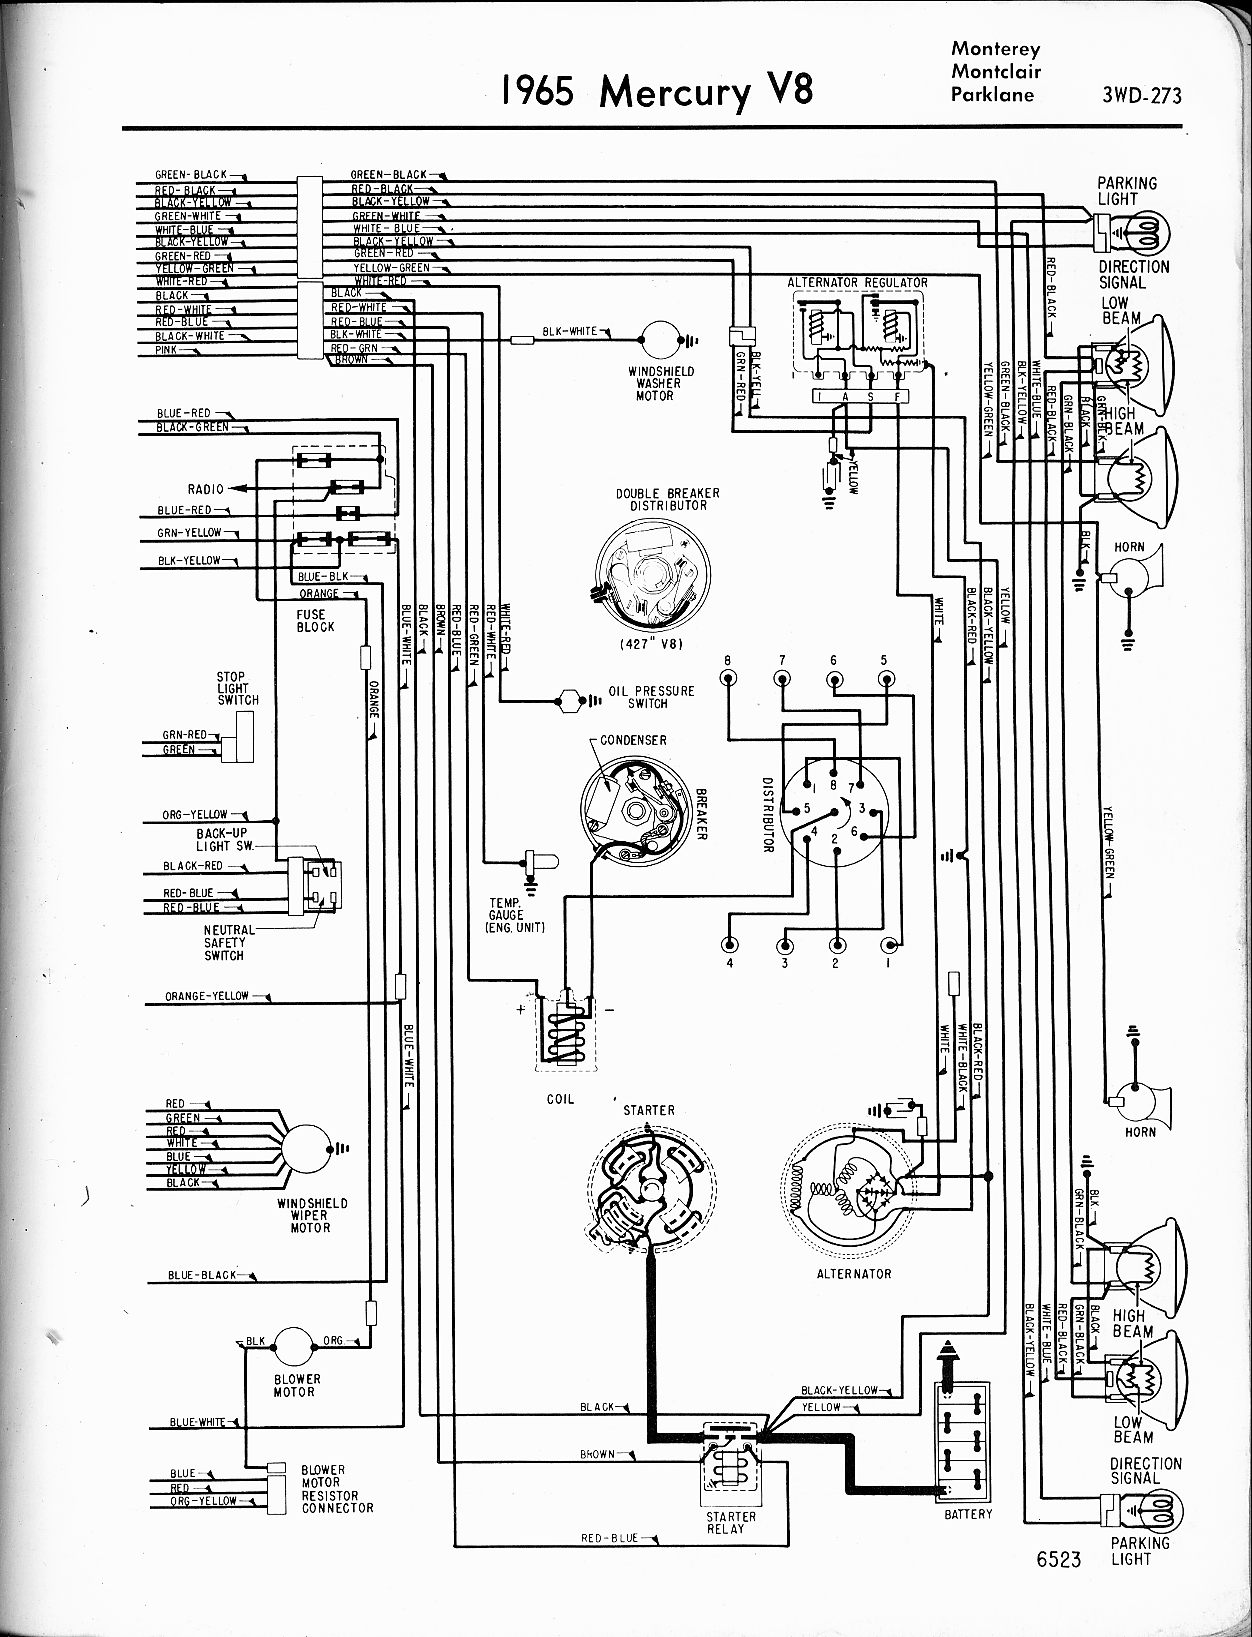 1970 Ford Truck Wiring Harness Library 1967 F 100 Mercury Diagrams The Old Car Manual Project F100